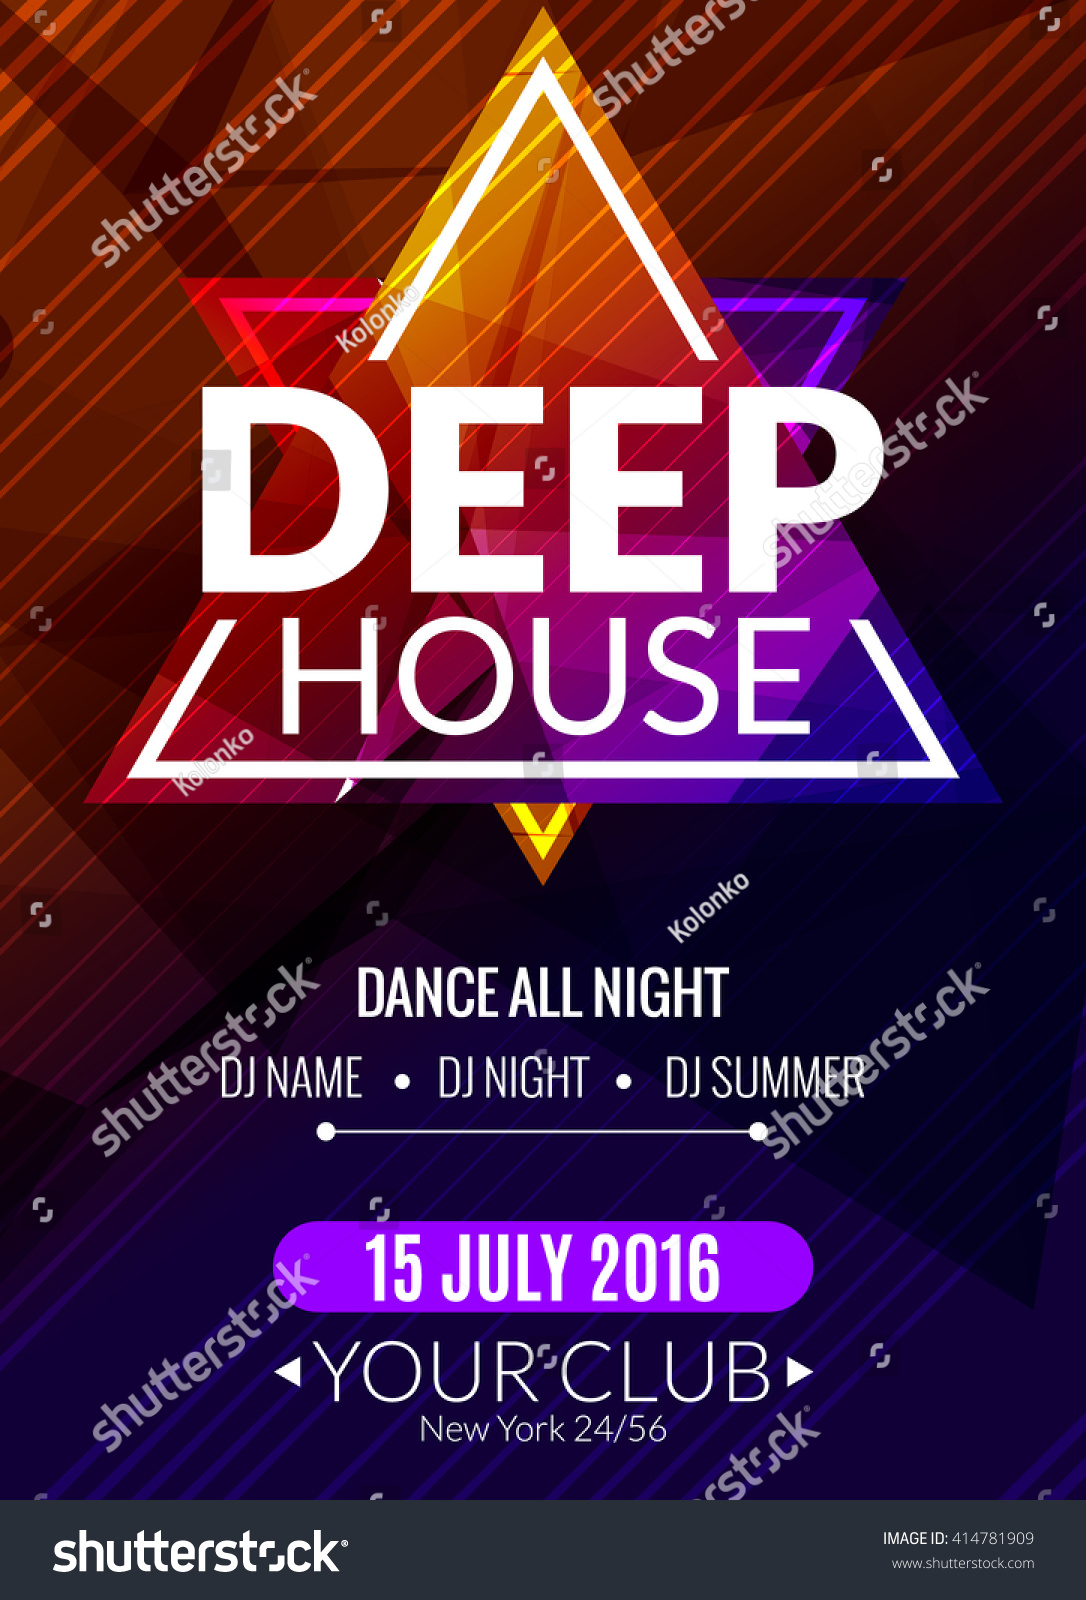 Club electronic deep house music poster stock vector for House music party